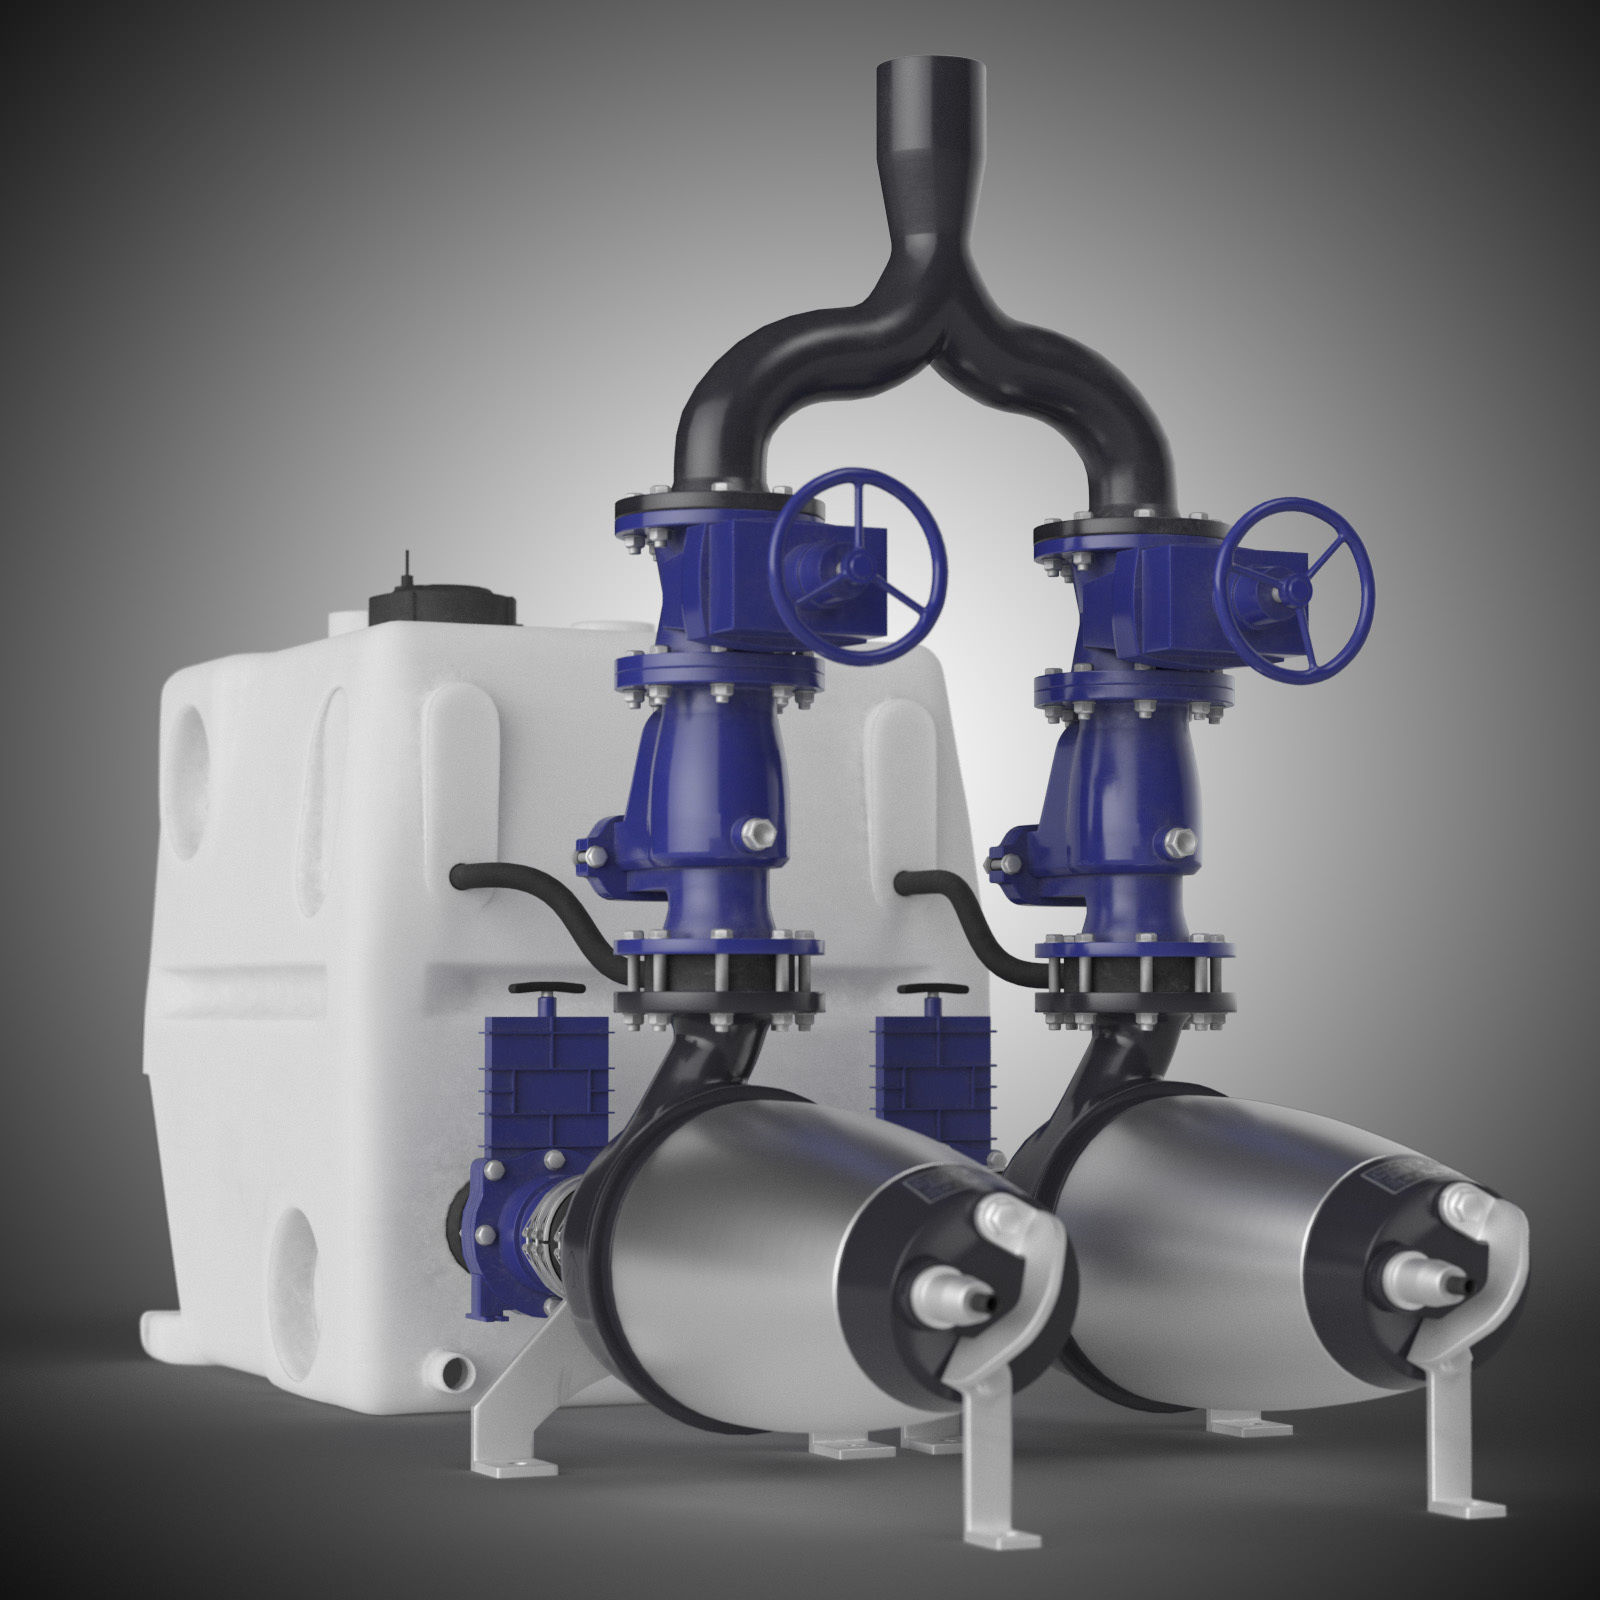 Grundfos multilift MDV pump with tank